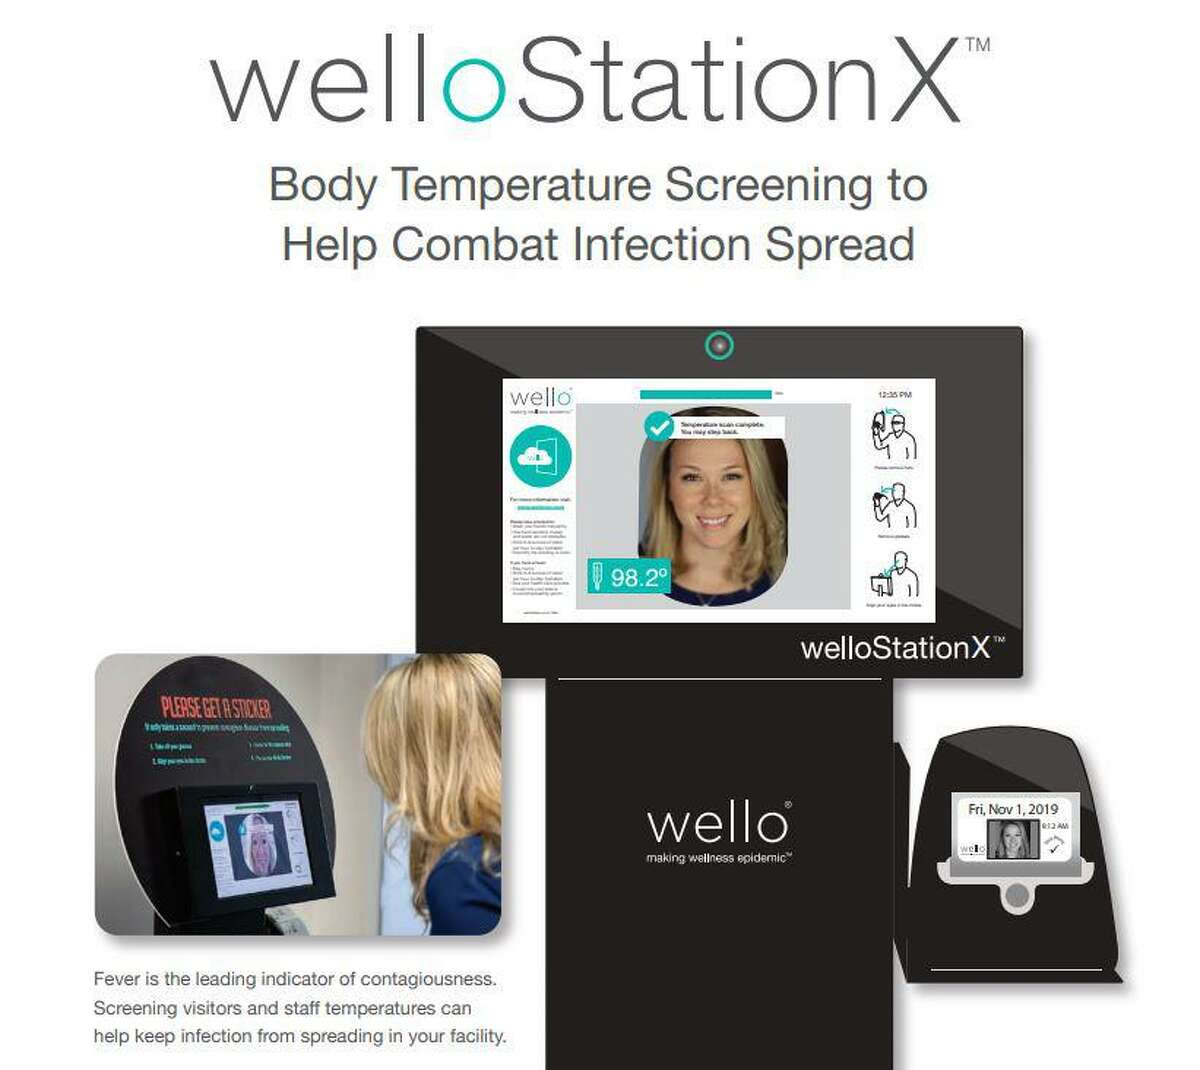 The Woodlands Township Board of Directors approved plans to buy stand-alone COVID-19 screening kiosks called the WellO StationX temperature screening kiosk. The township hopes to purchase eight of the devices for entrances to the township offices at a cost of $84,000. Each kiosk takes the temperature of a peron in a non-touch process and cost $10,500 per device.